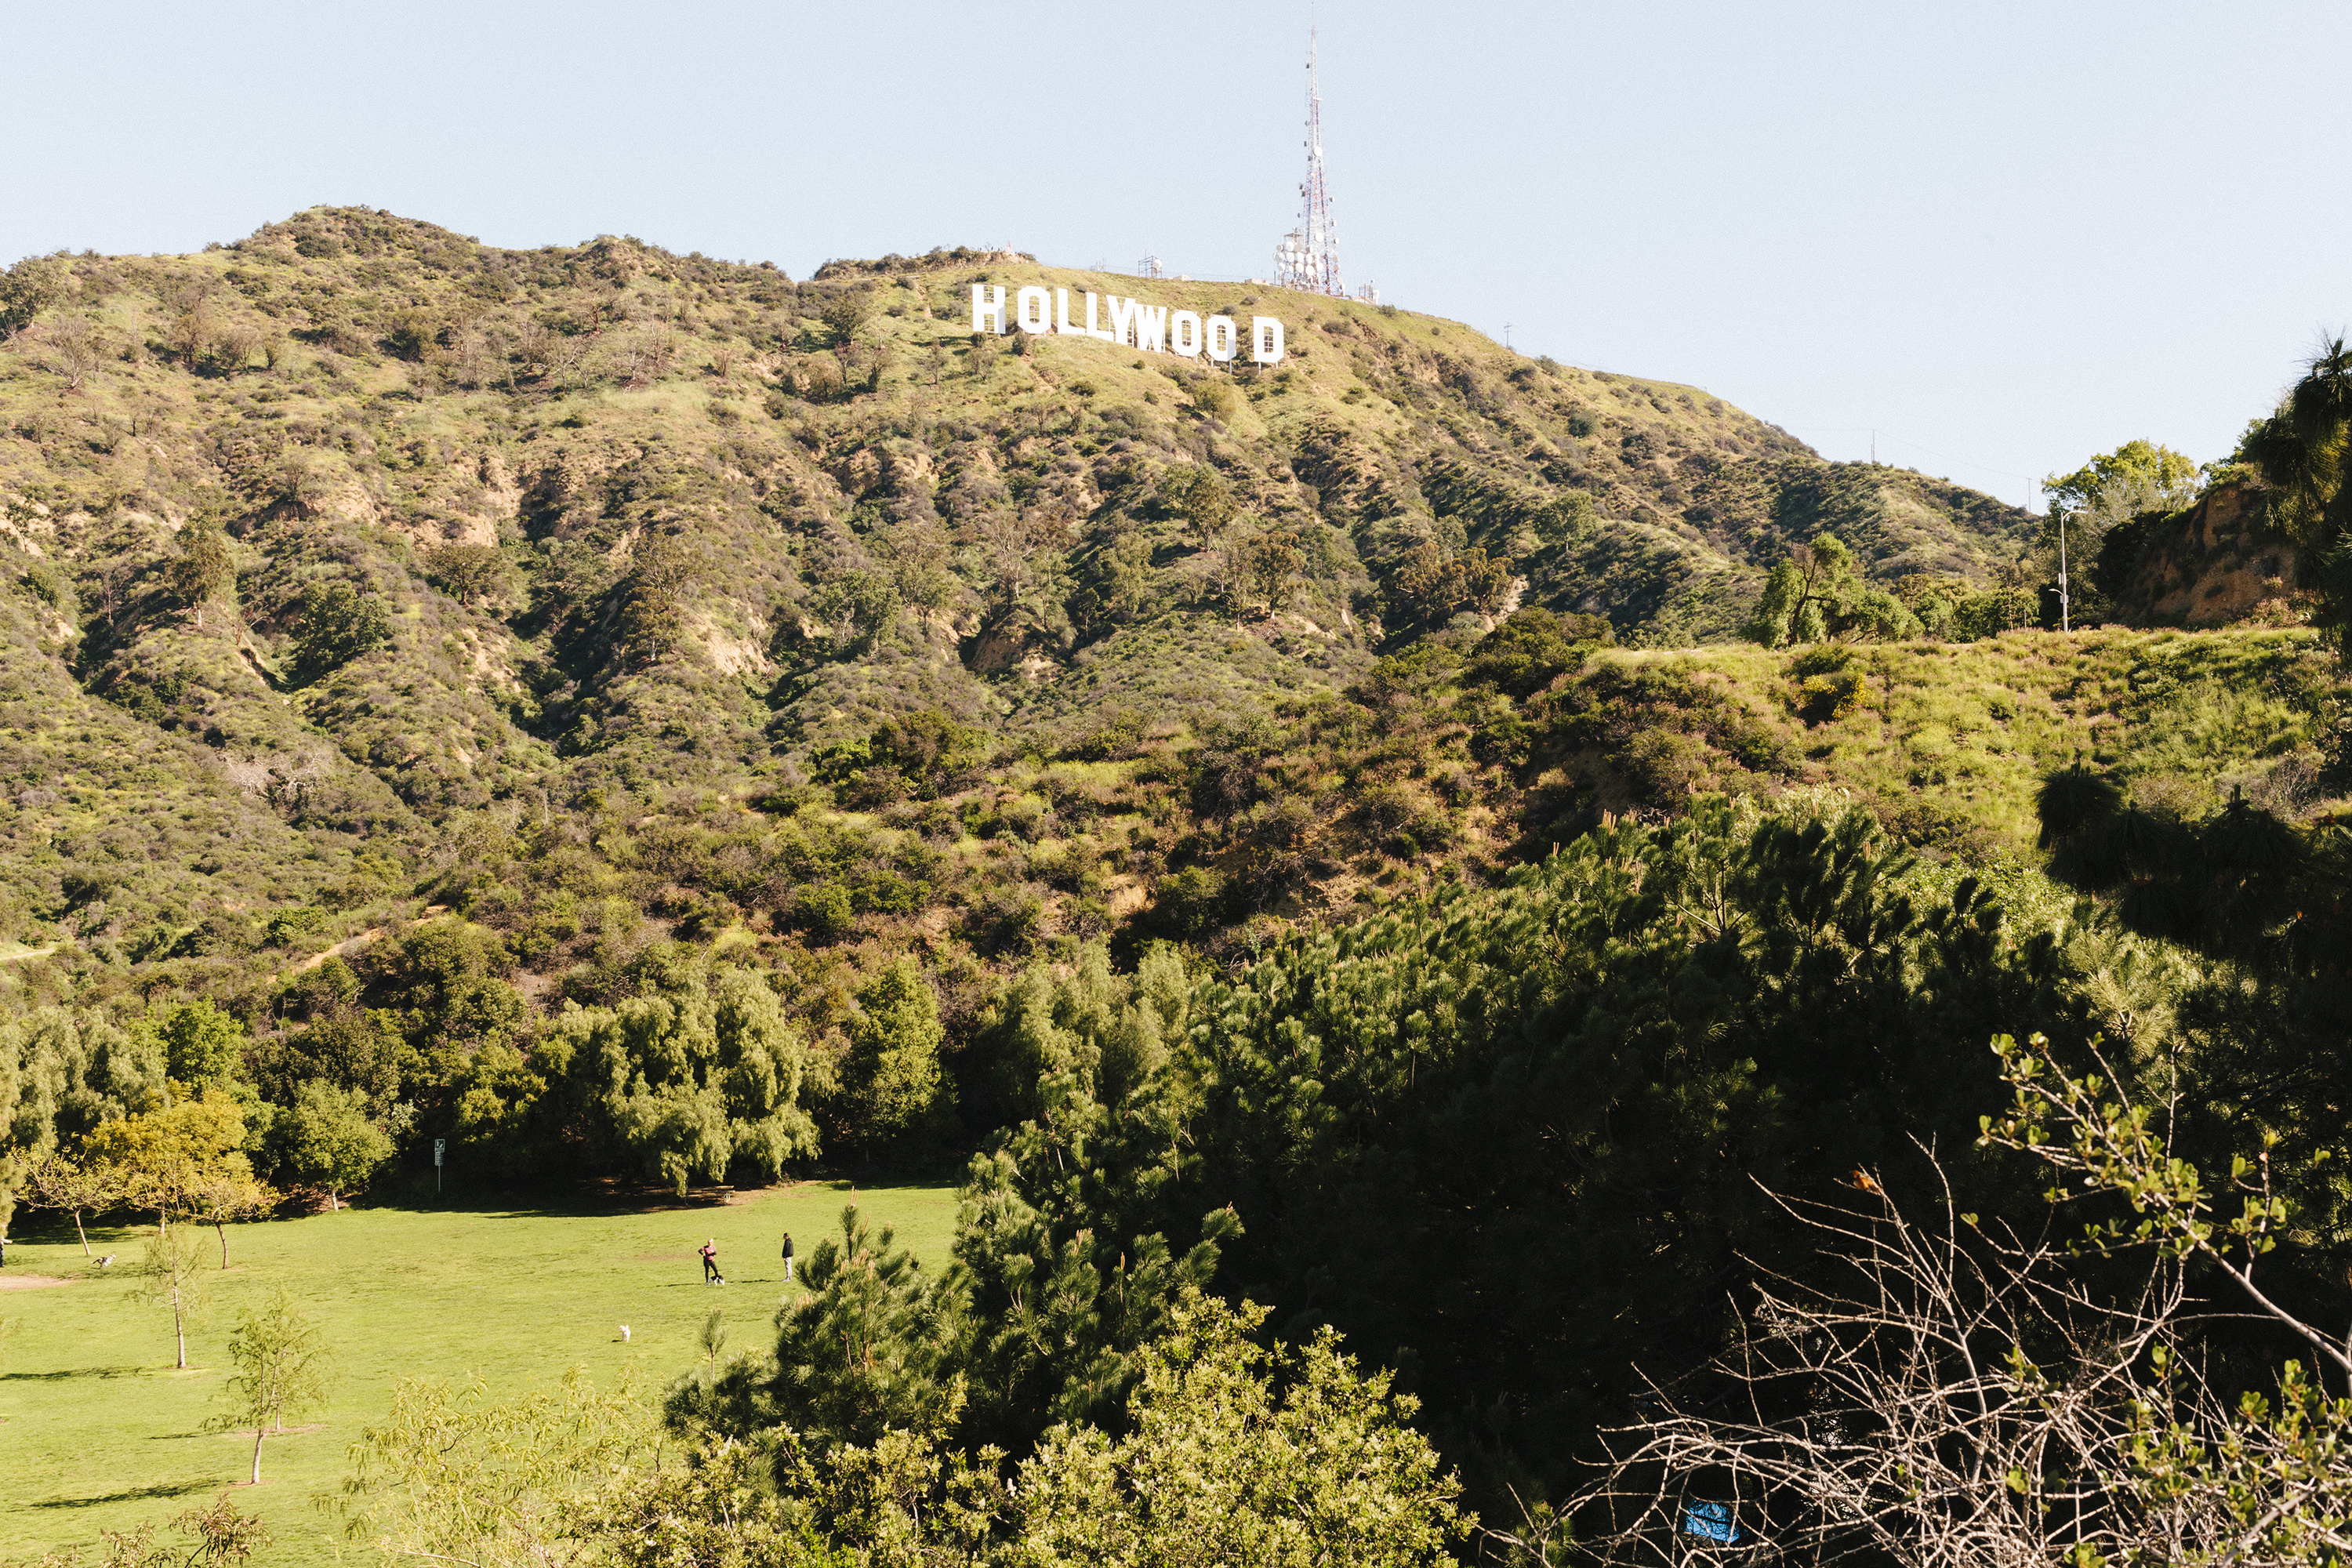 A valley and mountain. On the mountain is a sign that reads Hollywood.